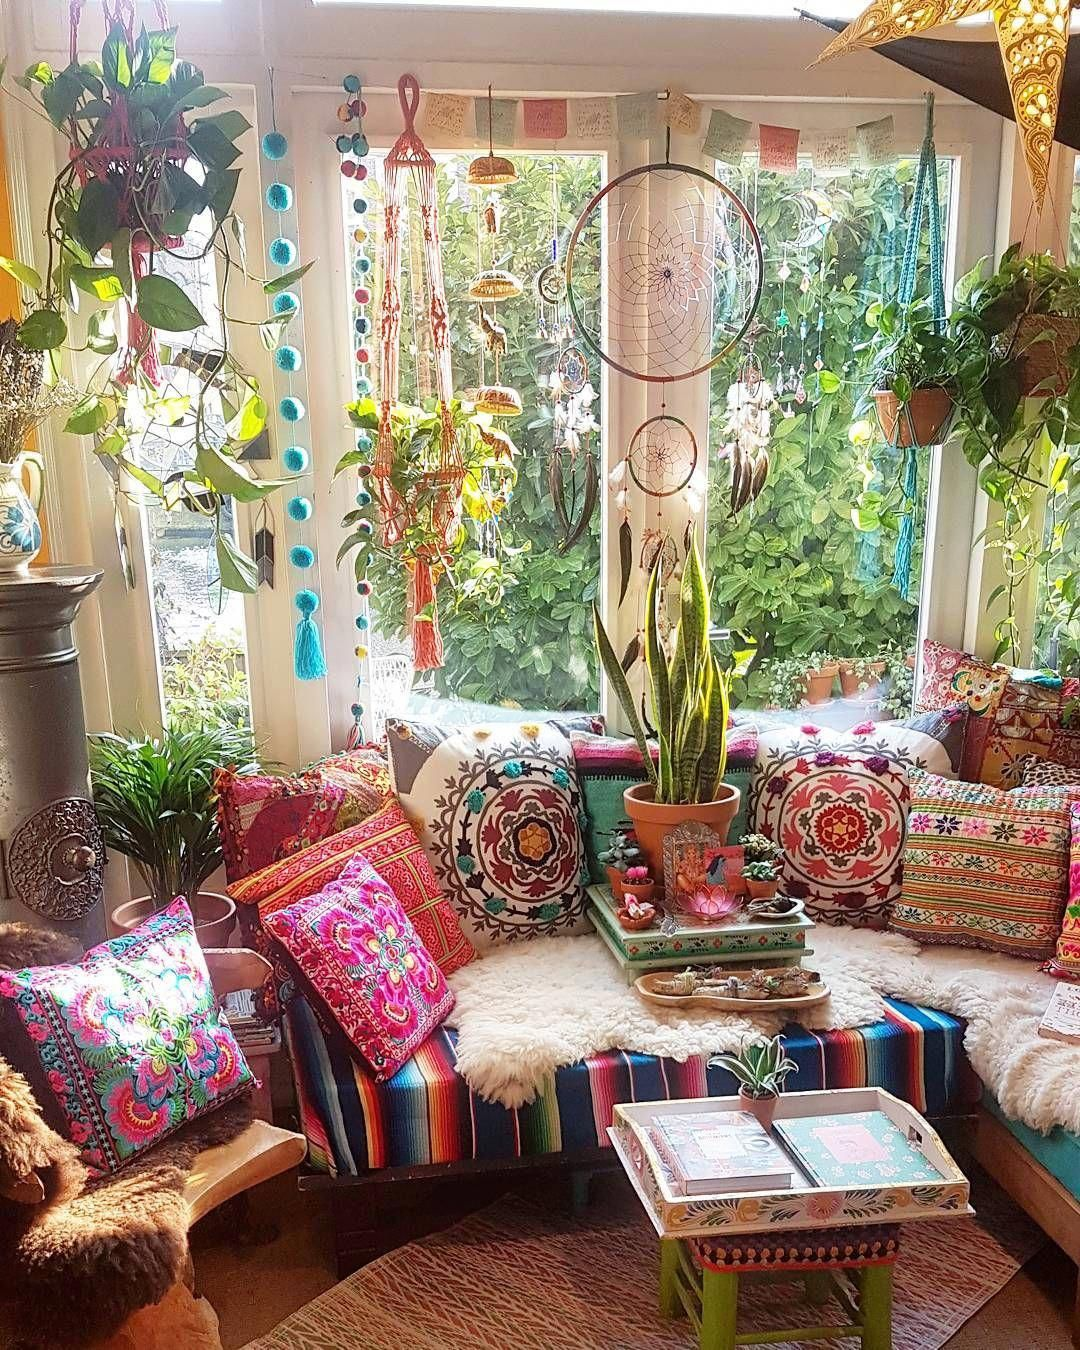 Bohemian Decor: Bohemian Interior Design -> When Choosing A Sofa, Make